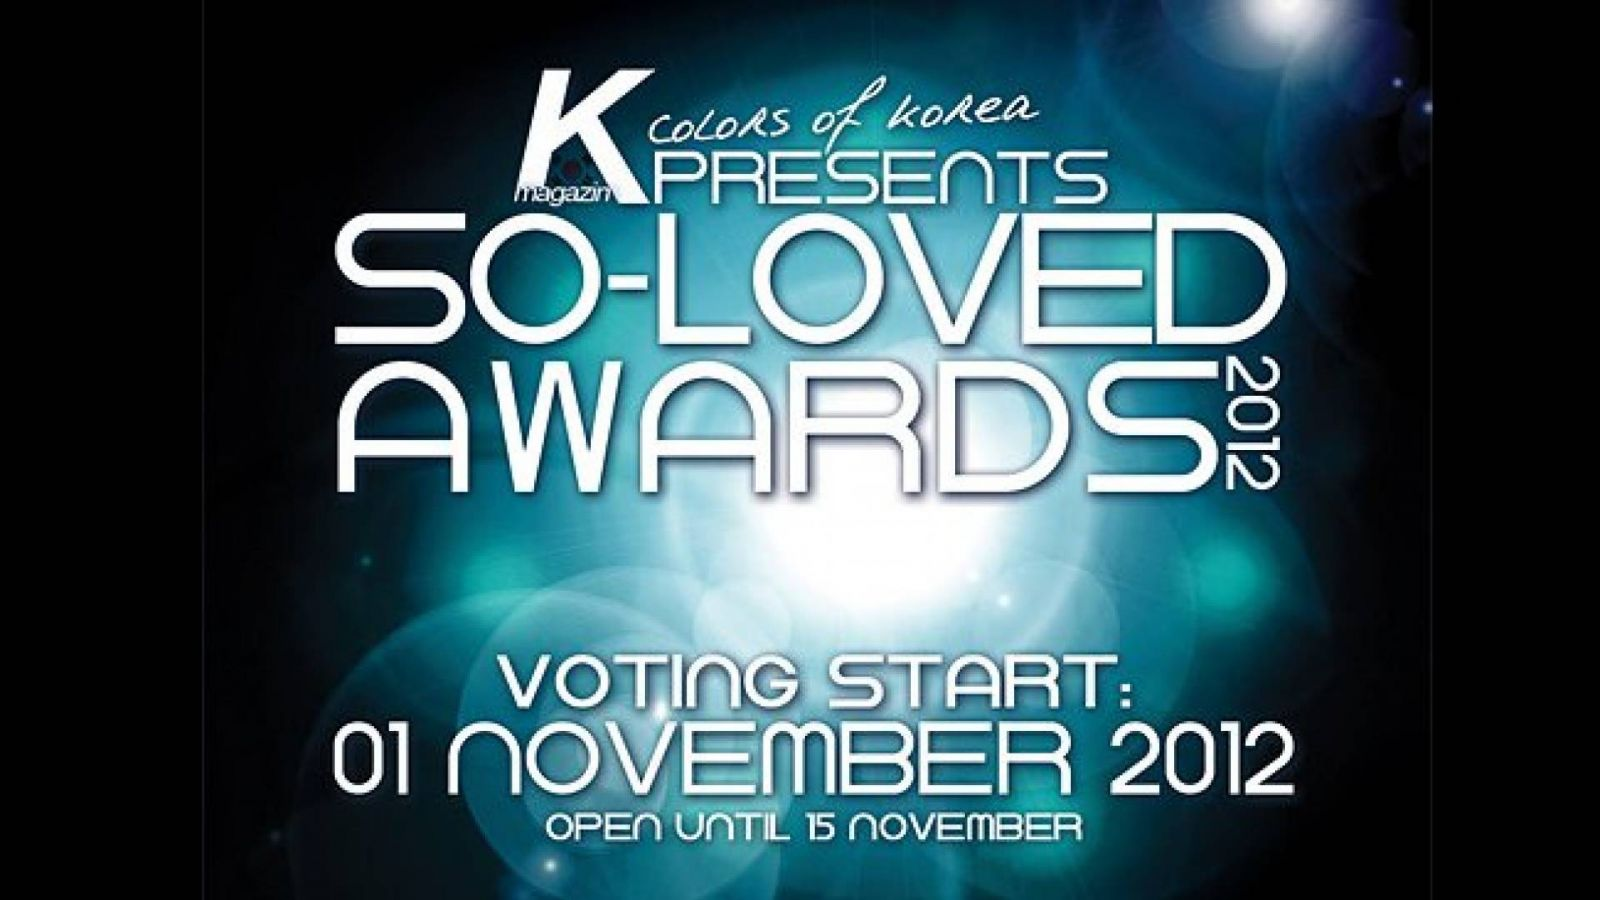 SO-LOVED AWARDS 2012 © K Colors of Korea